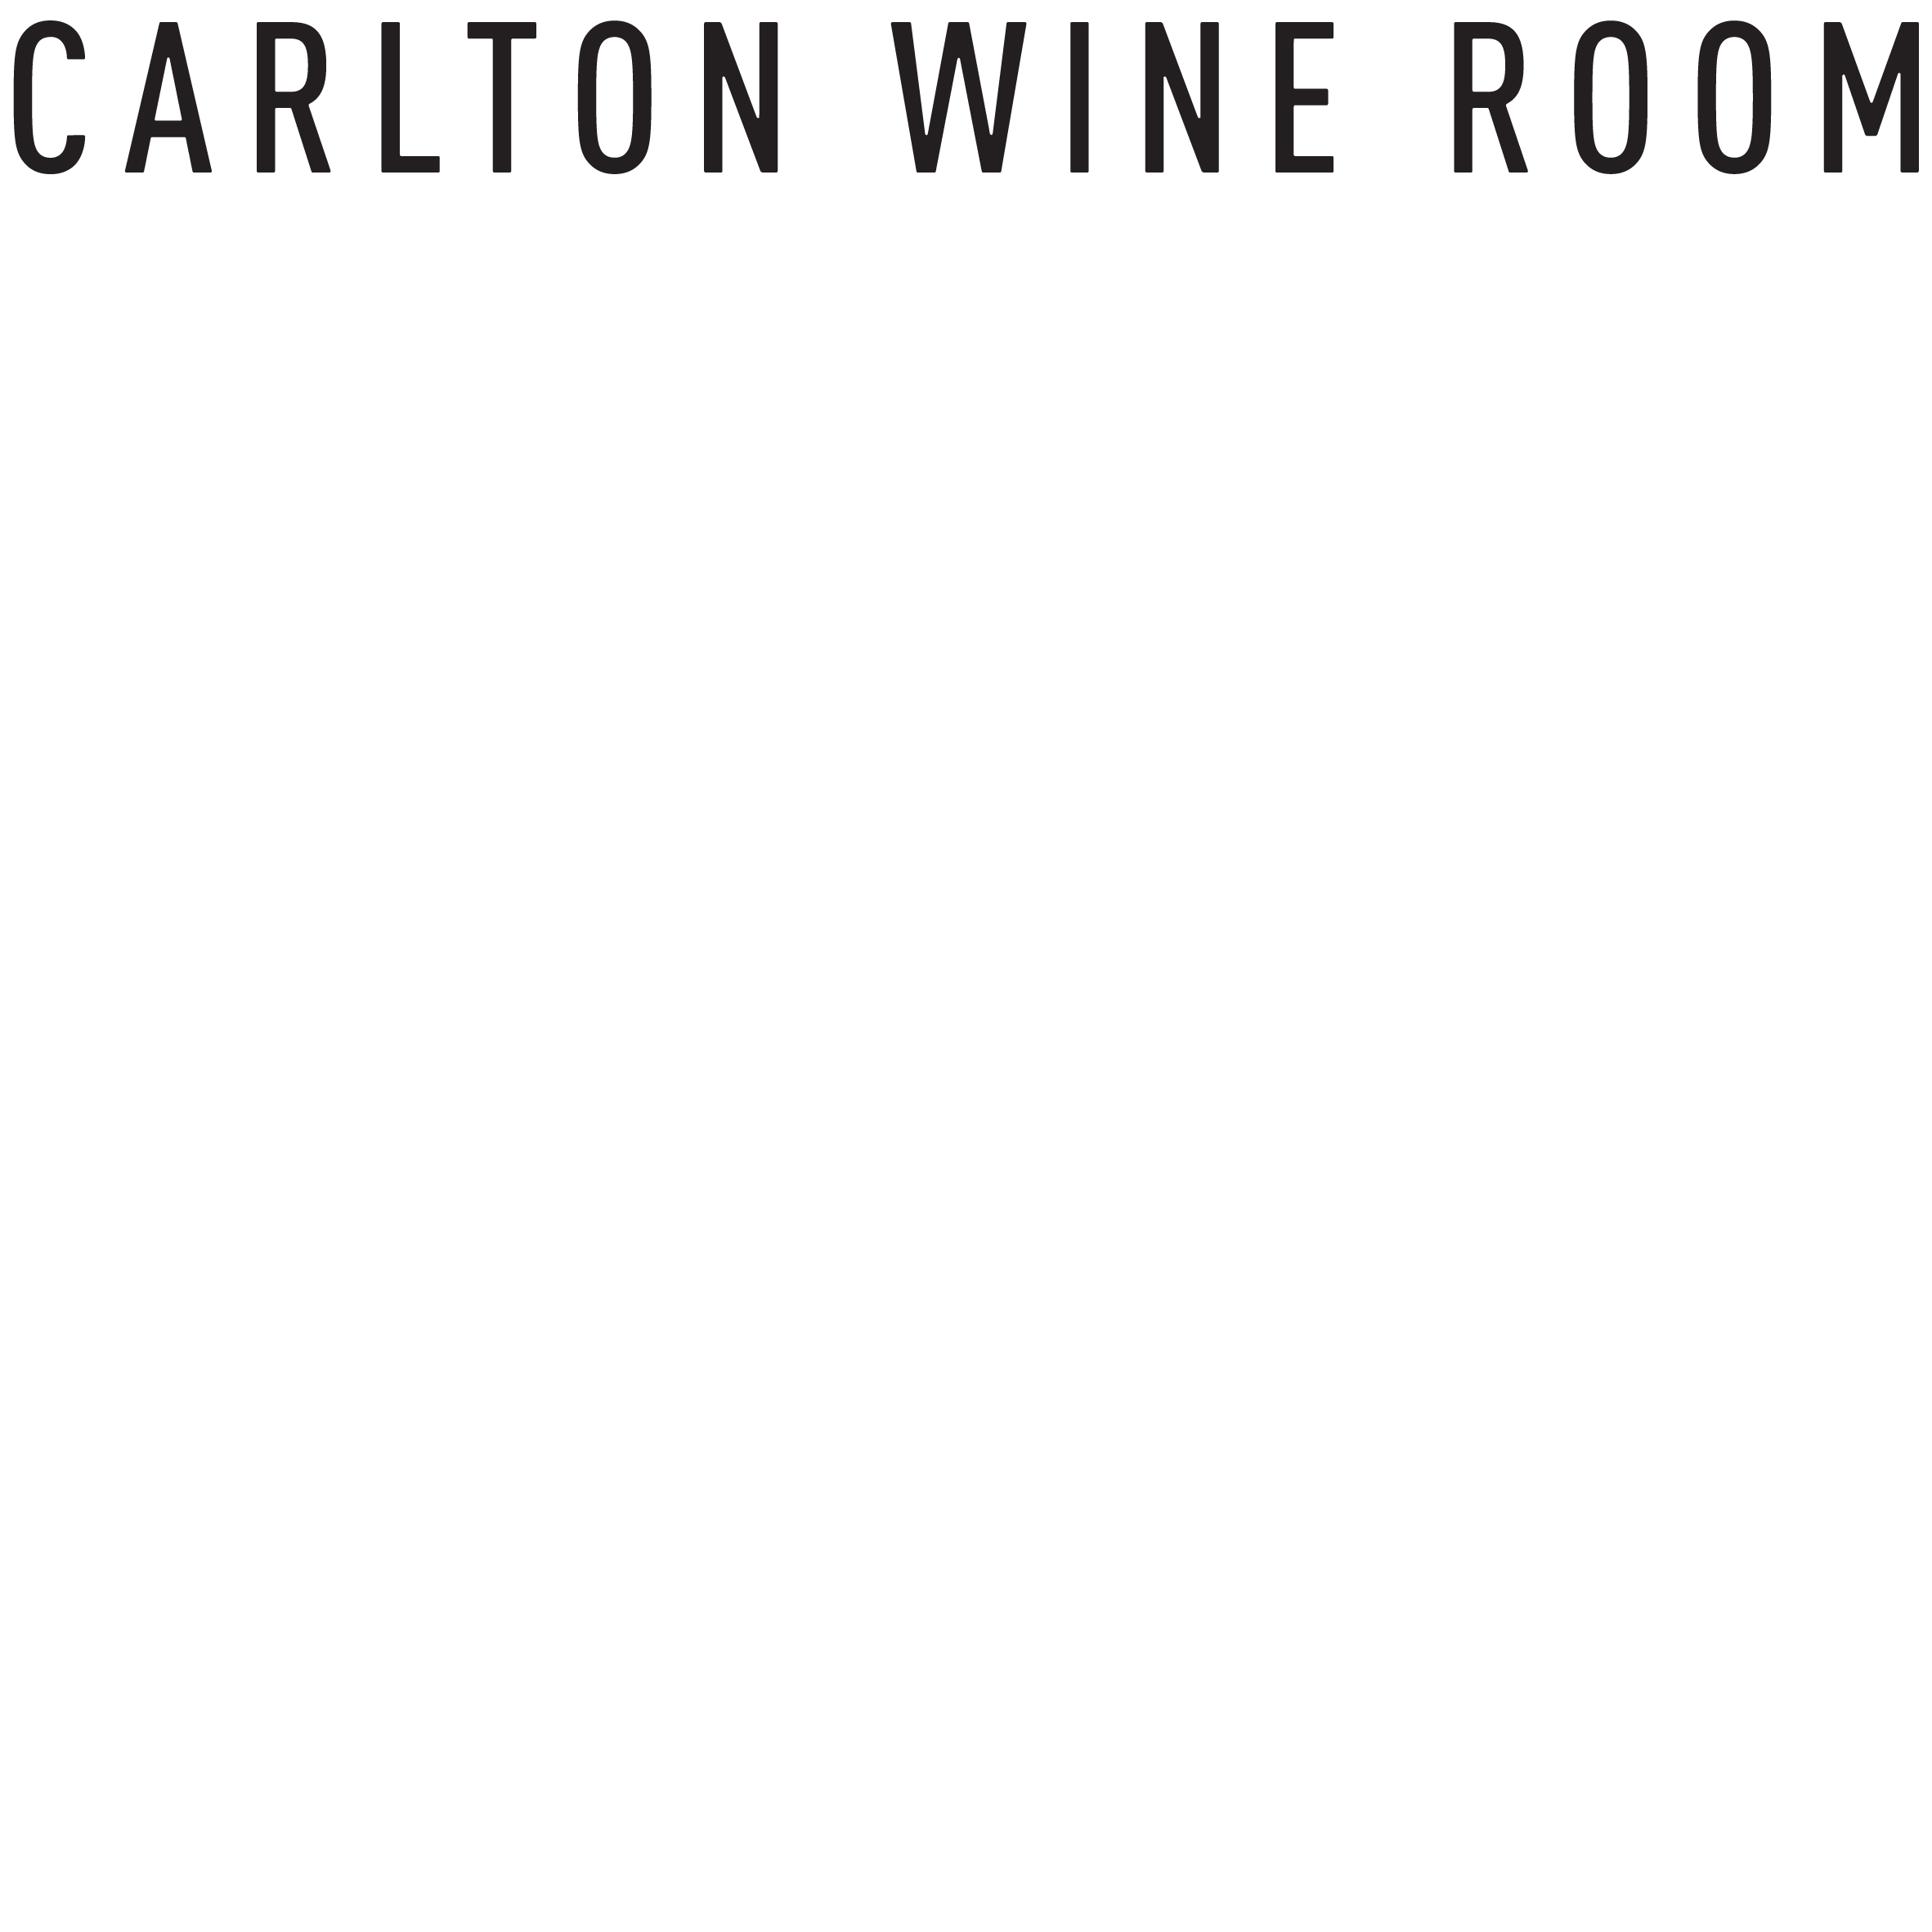 Carlton Wine Room